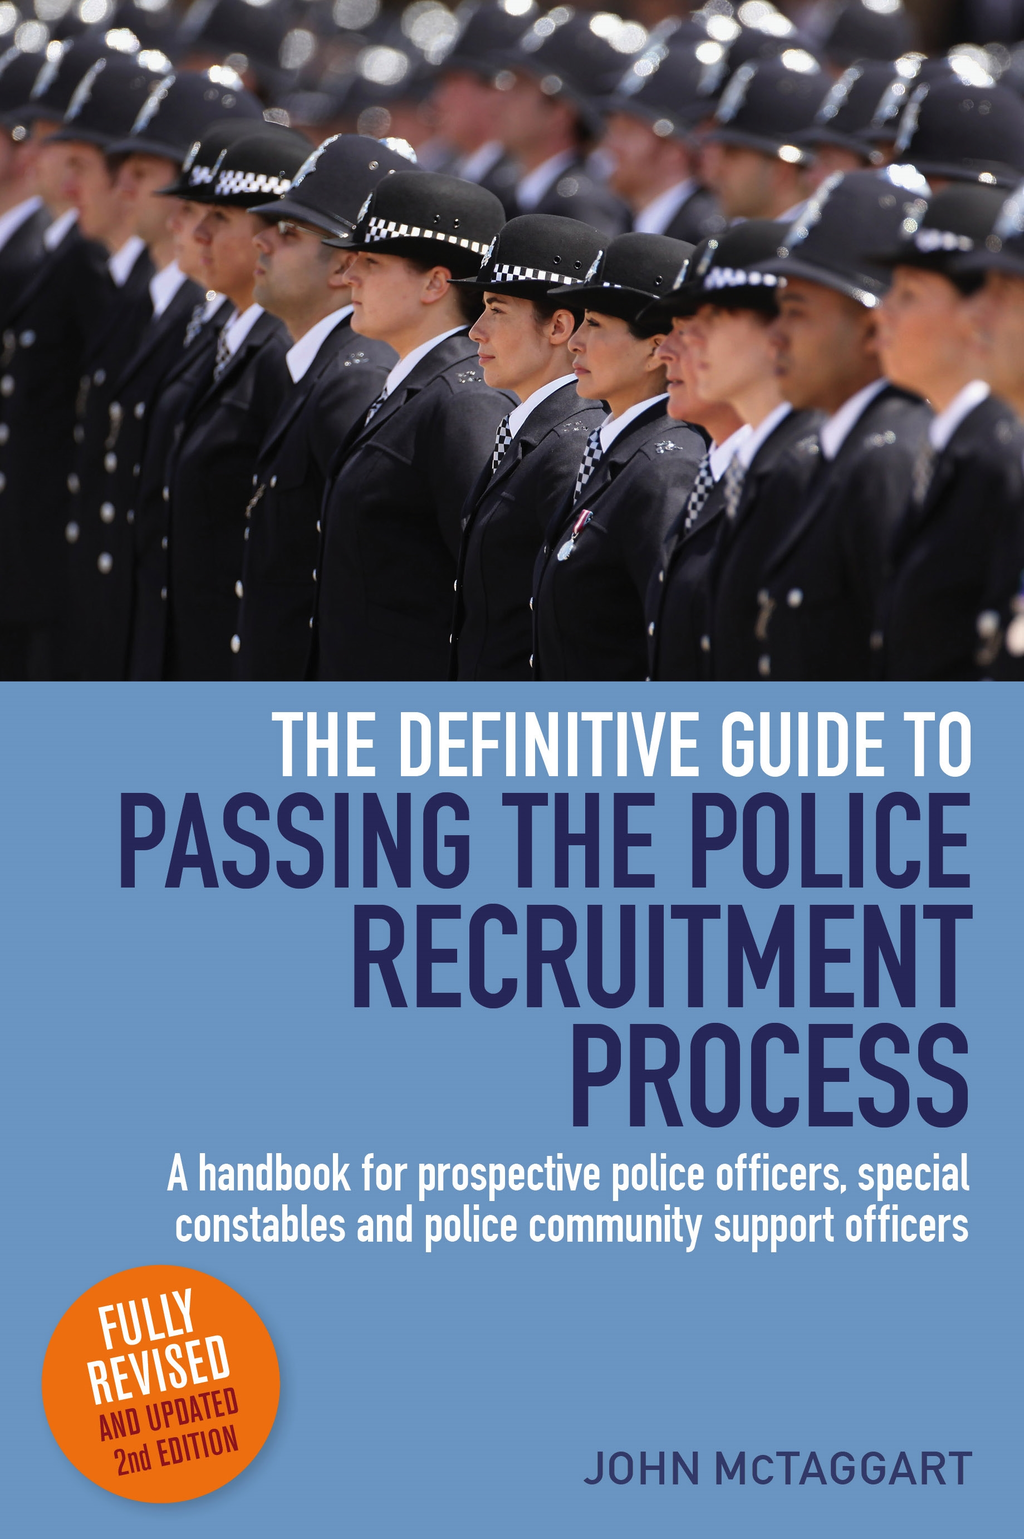 Definitive Guide To Passing The Police Recruitment Process A handbook for prospective police officers,  special constables and police community support